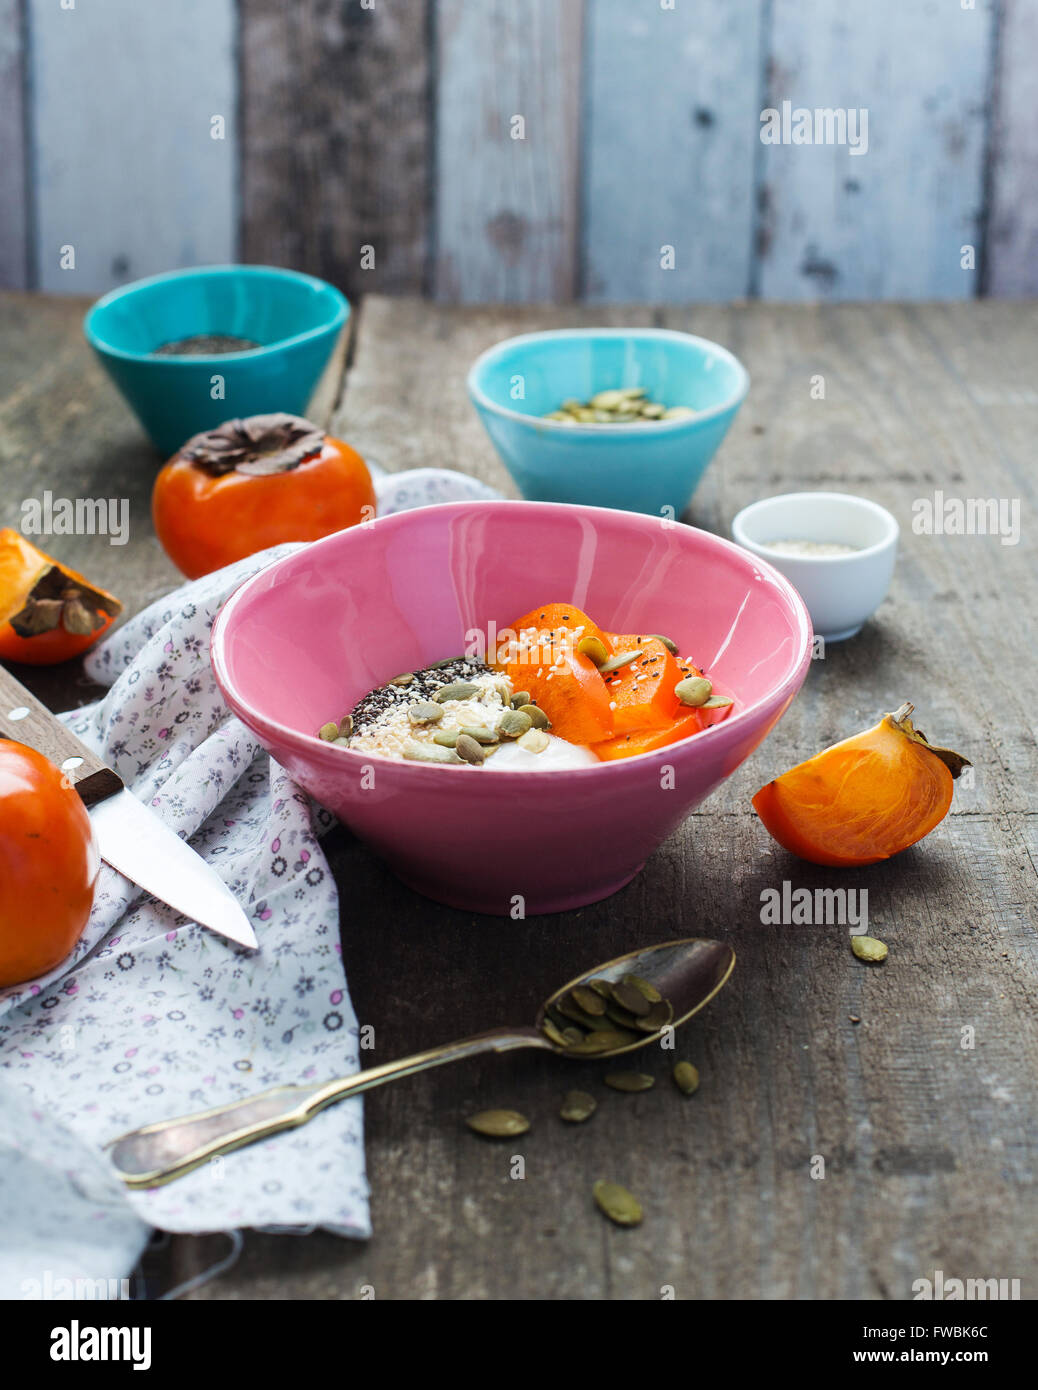 Breakfast bowl with yogurt, persimmon and superfoods - Stock Image